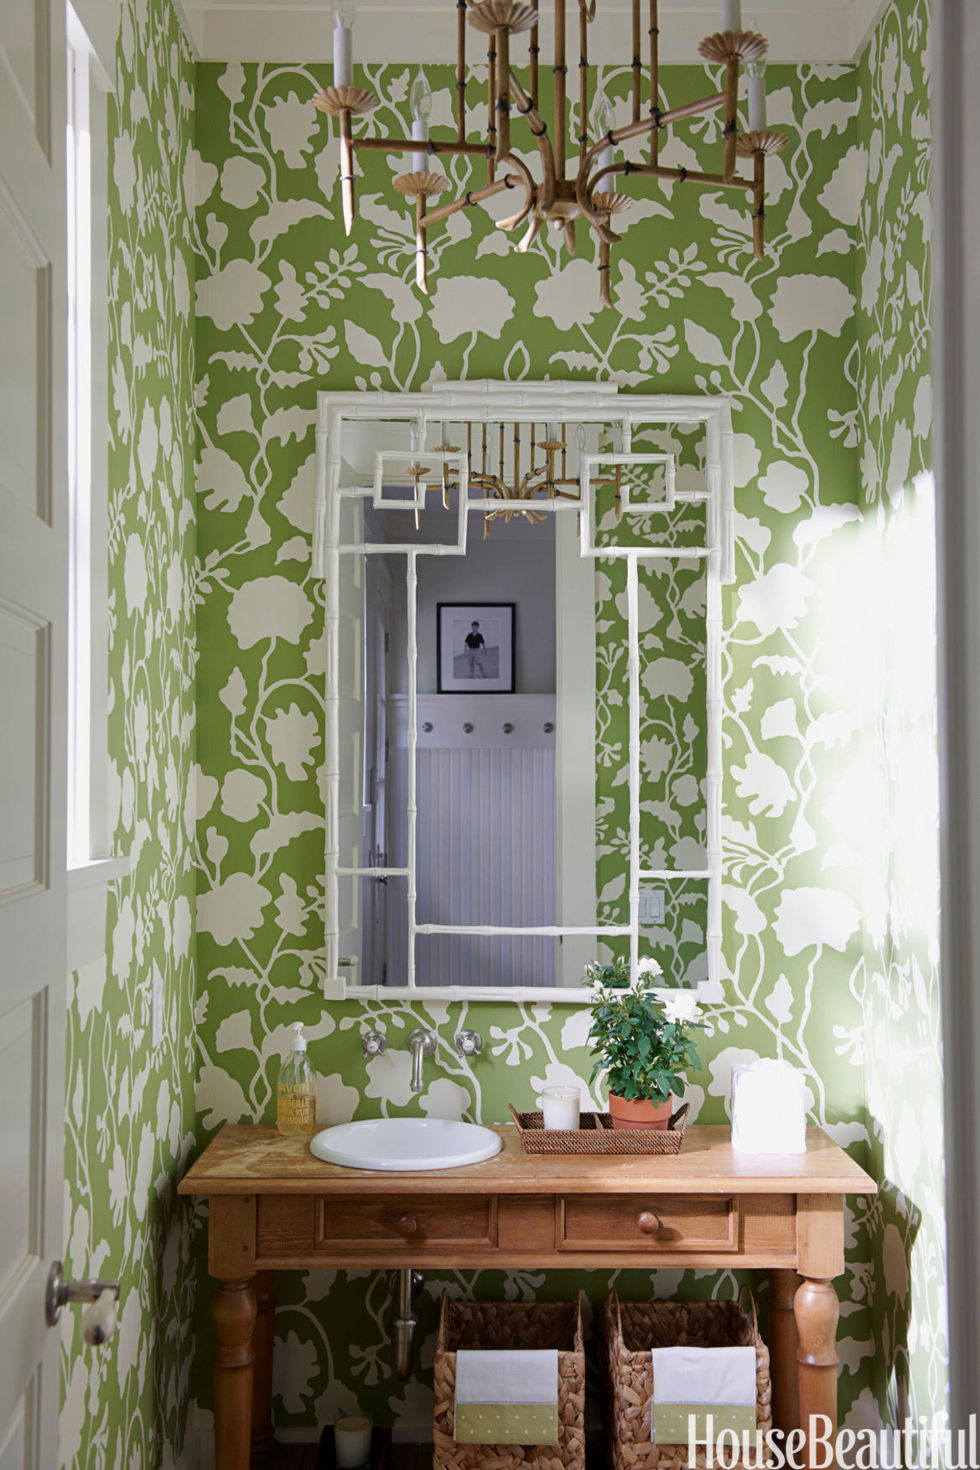 House Beautiful.Com 11 small space design ideas - how to make the most of a small space